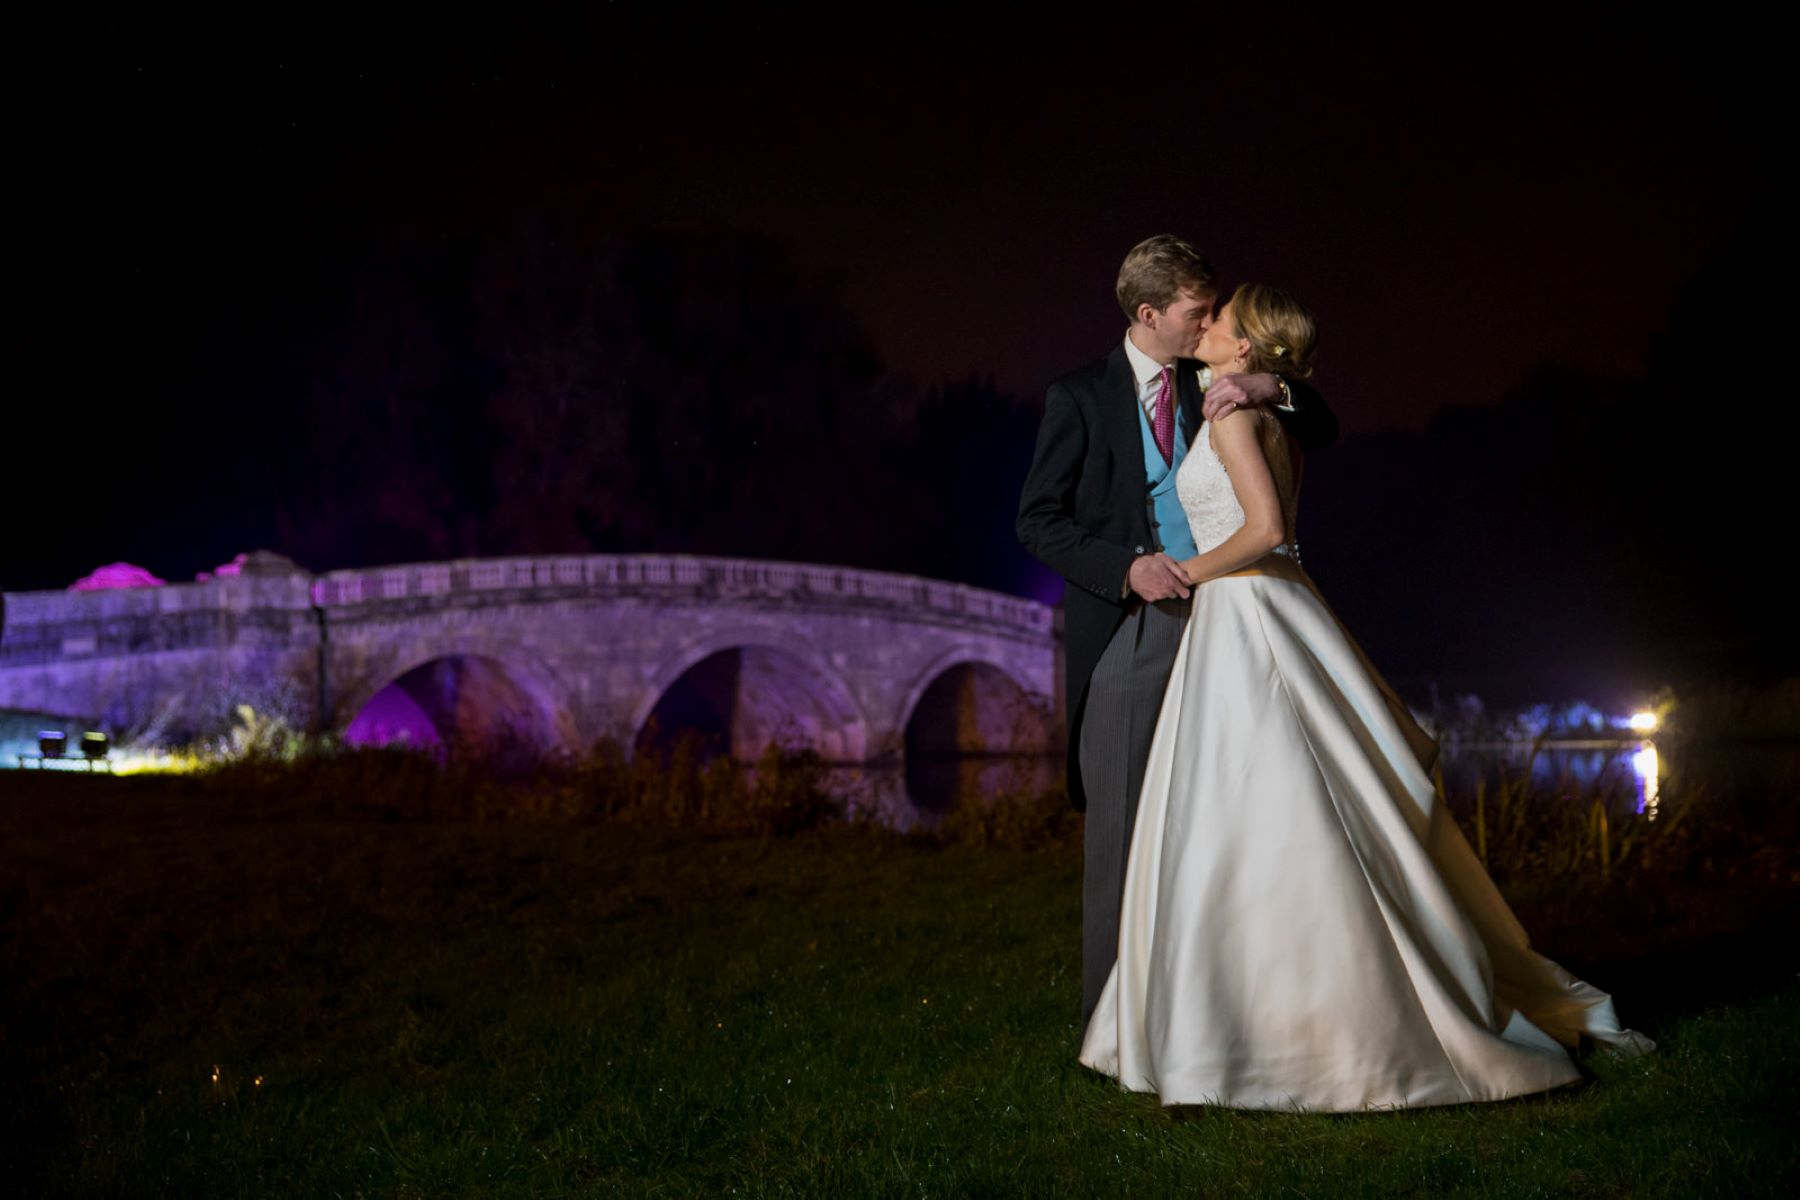 111 bride groom kiss beside floodlit bridge blenheim palace grounds woodstock oxfordshire wedding photography 1